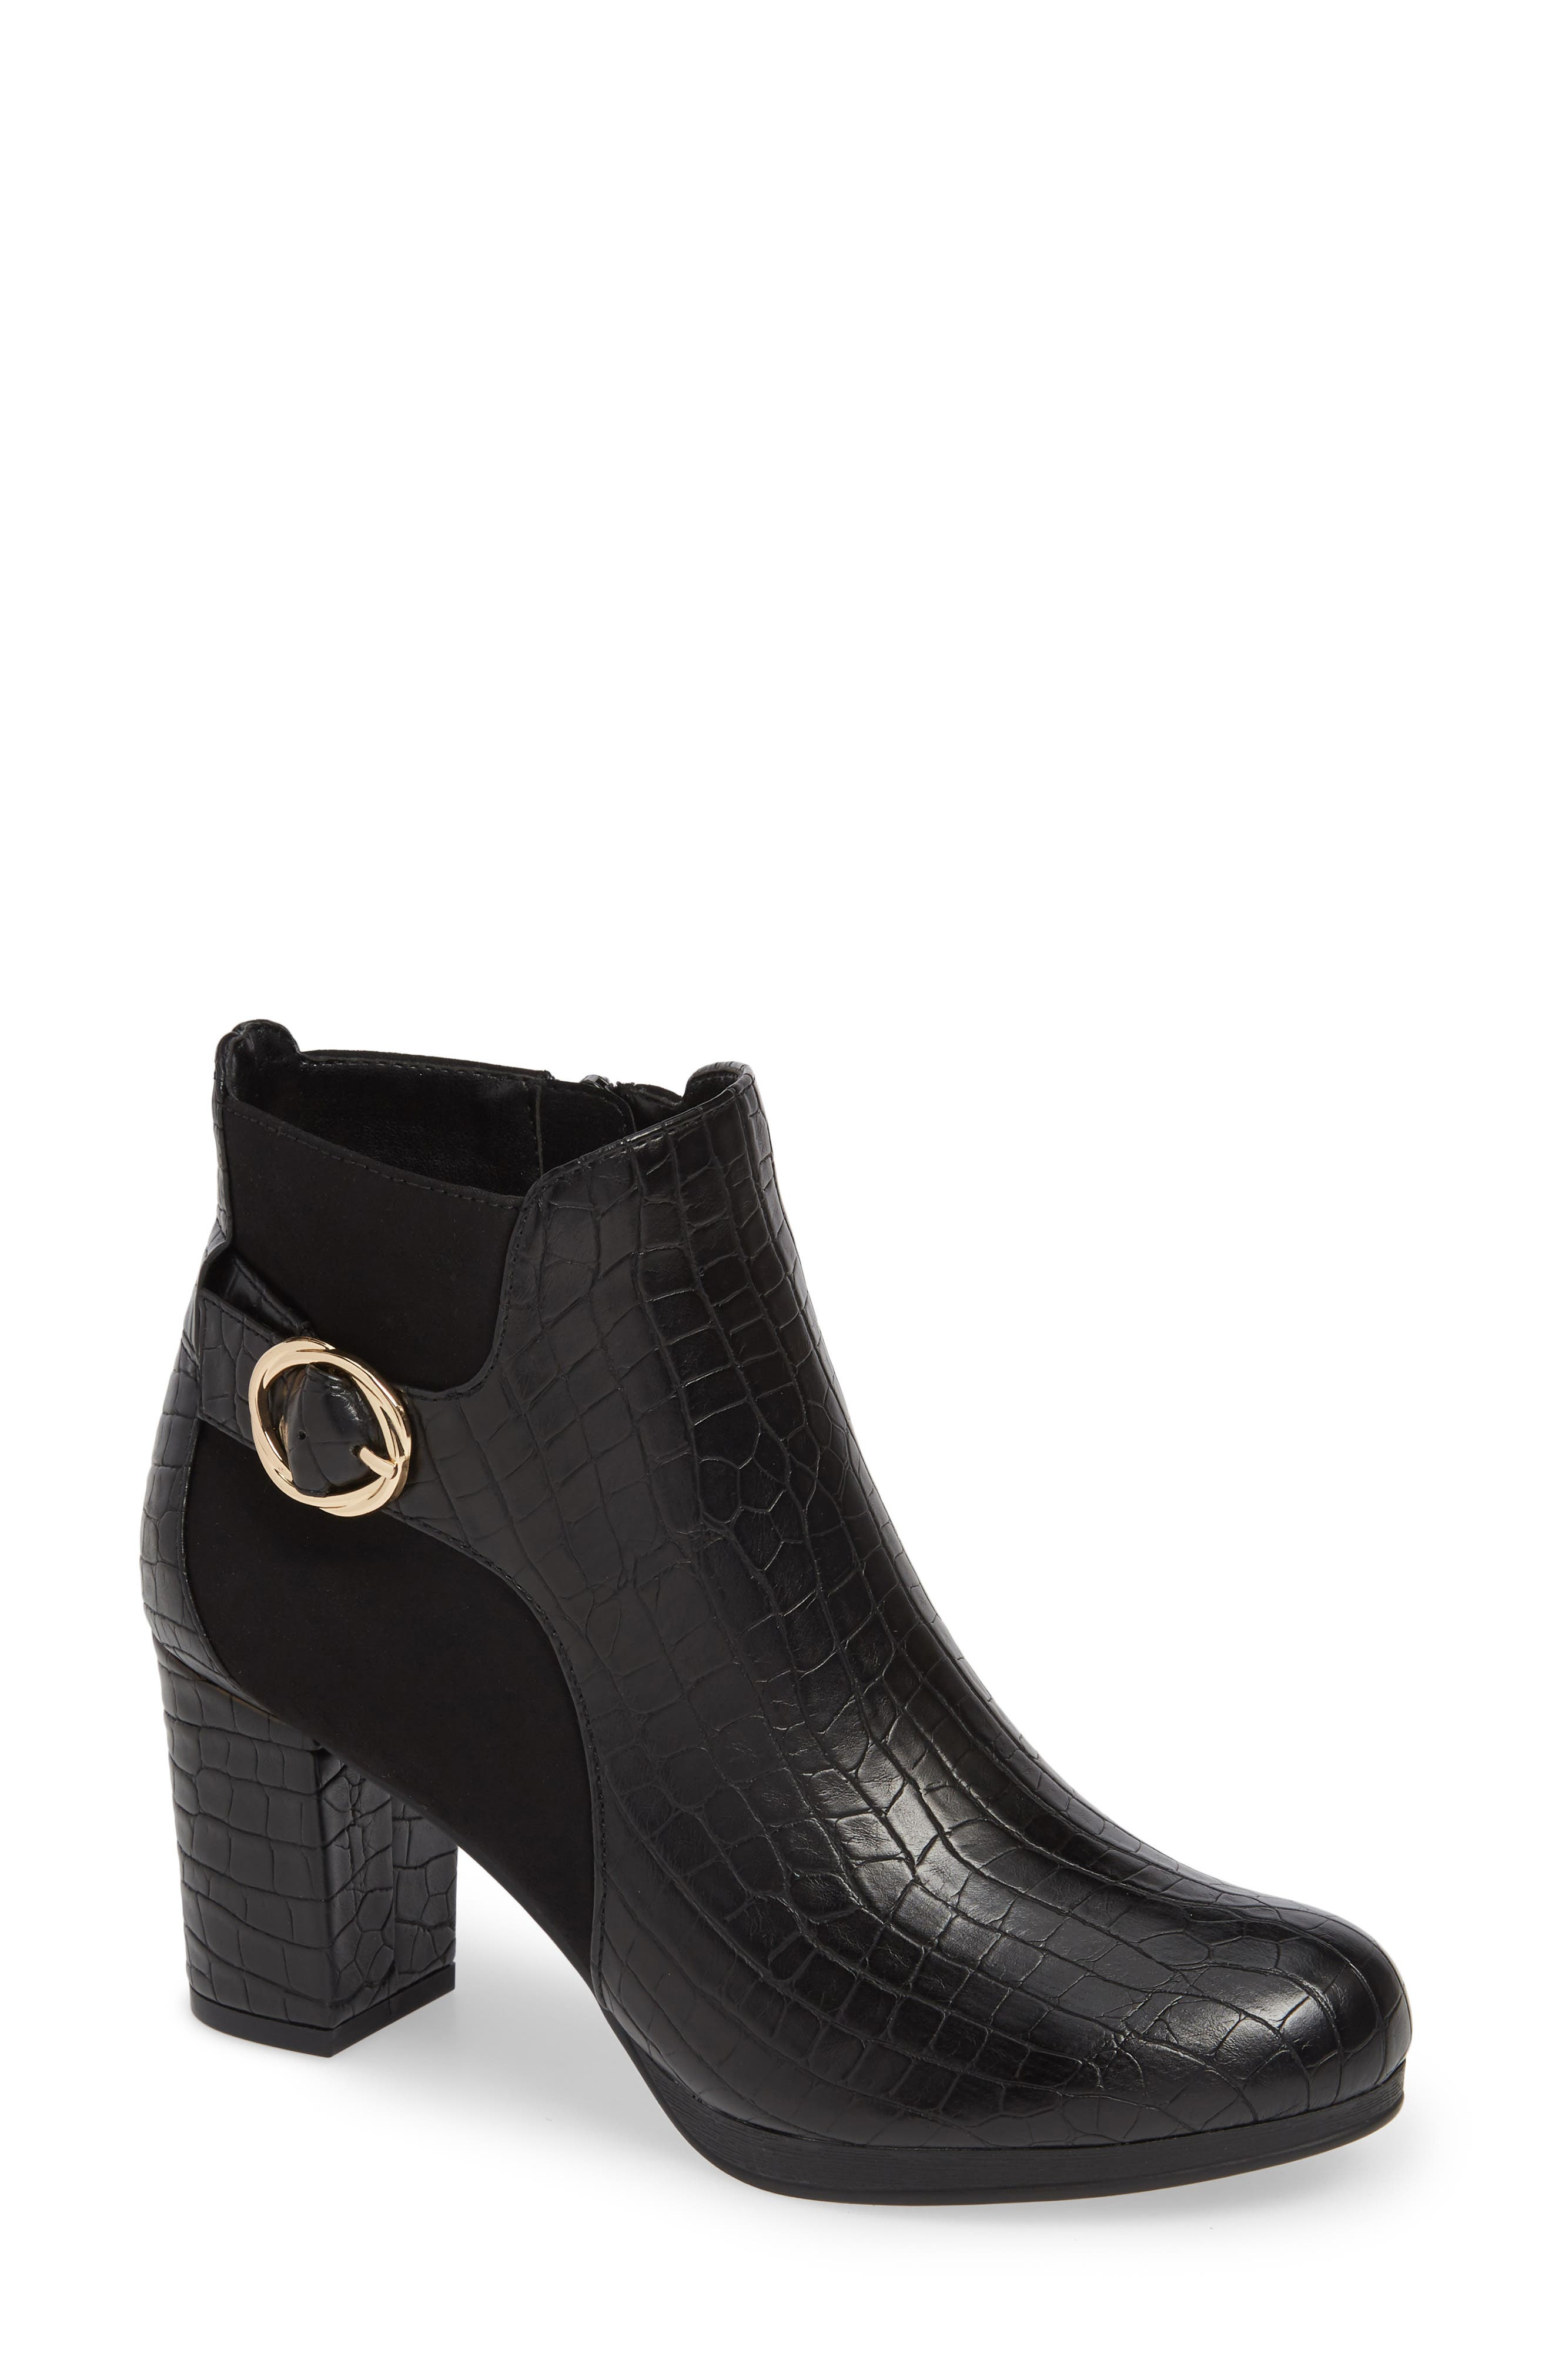 Bella Vita Leann Buckle Bootie WW - Black